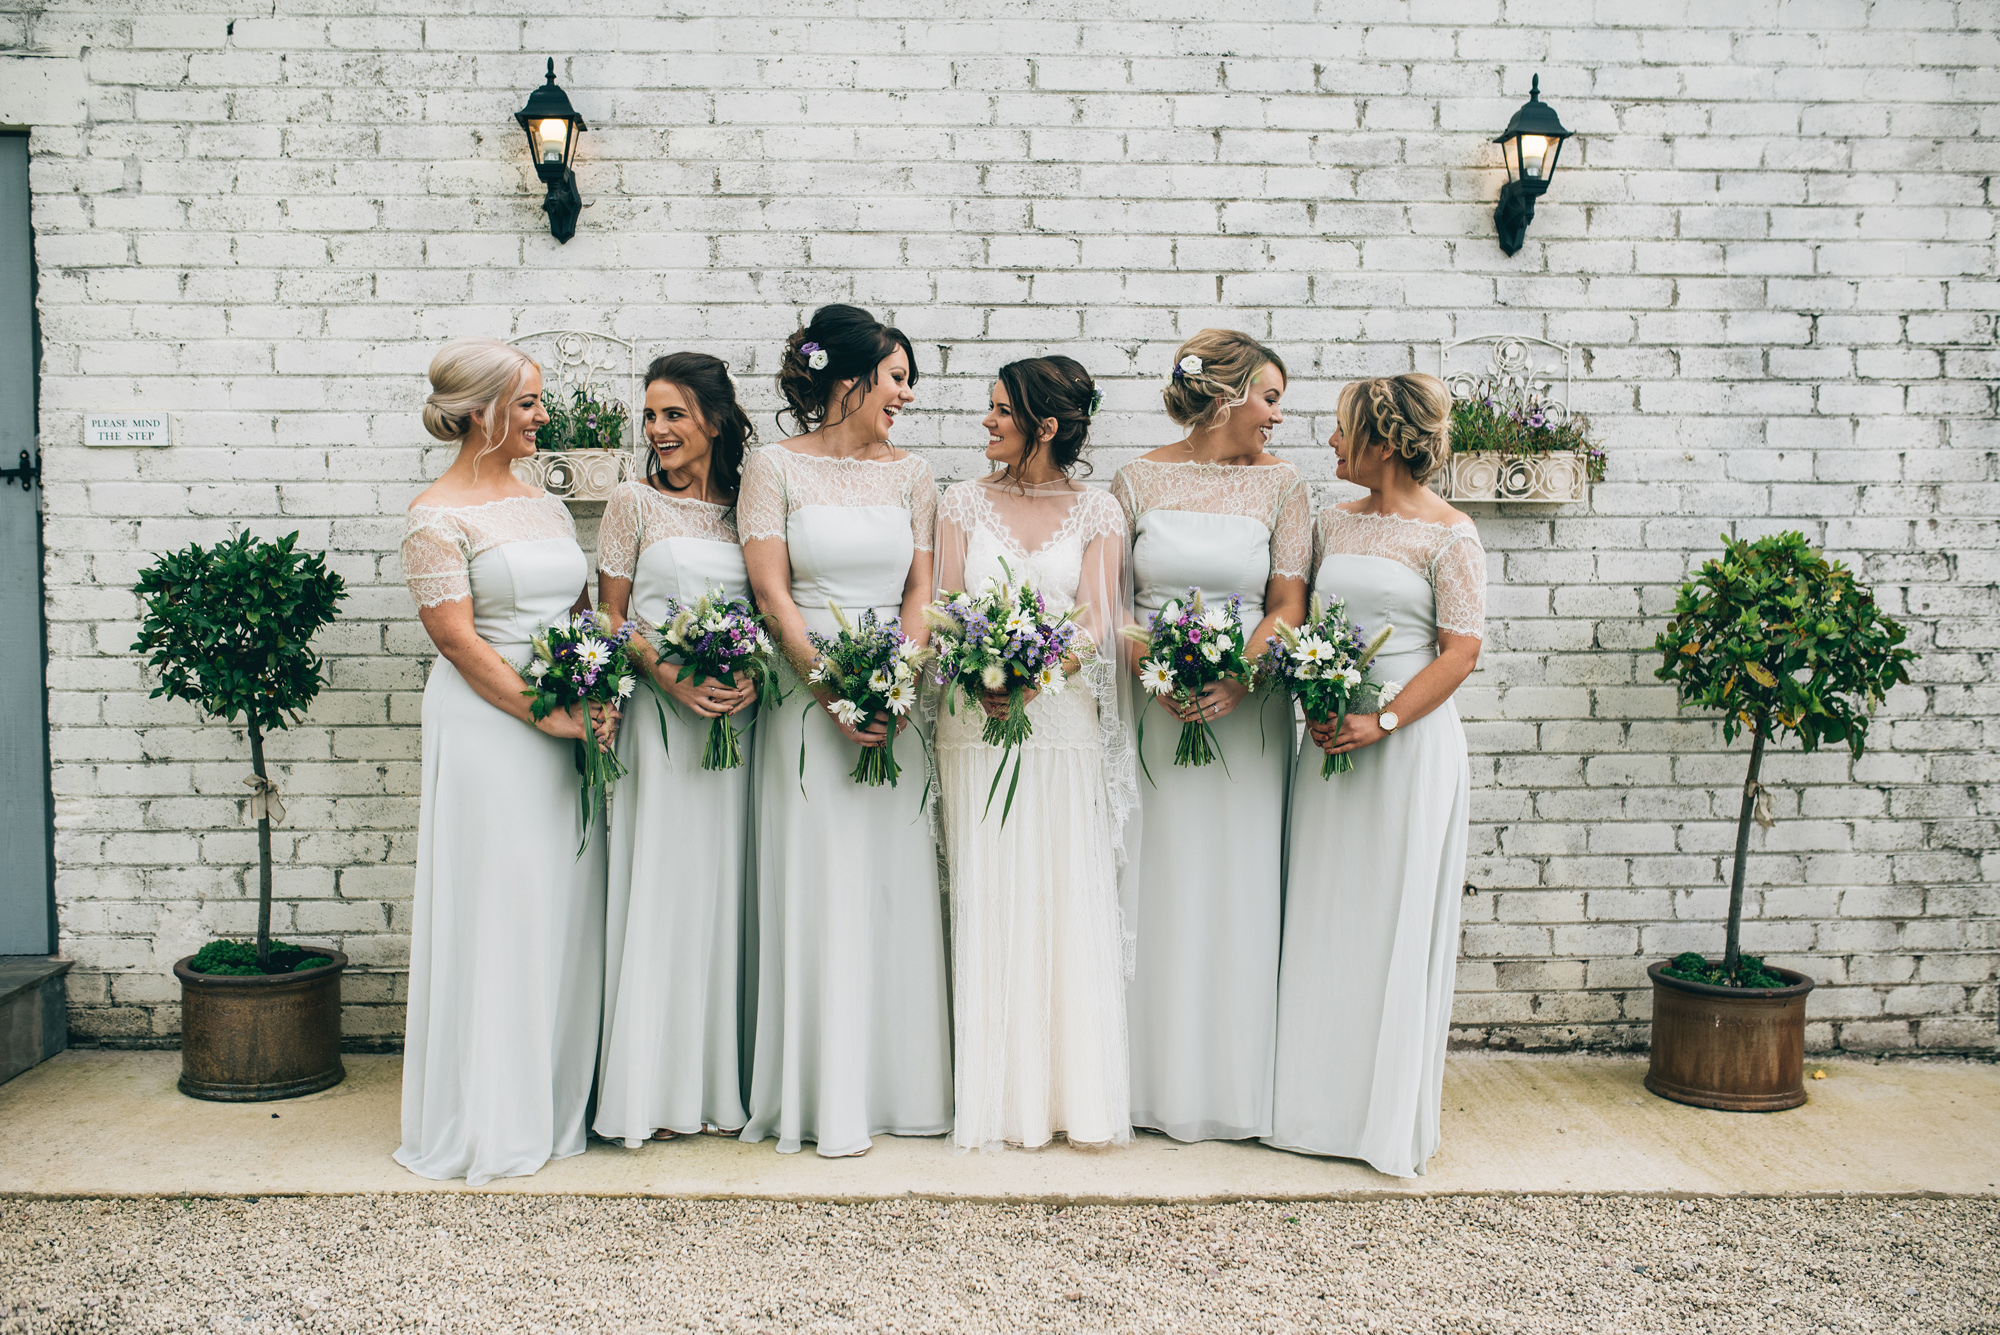 Kate-Beaumont-Sheffield-Lucy-Bohemian-Lace-Dress-Barn-Wedding-Cumbria-27.jpg